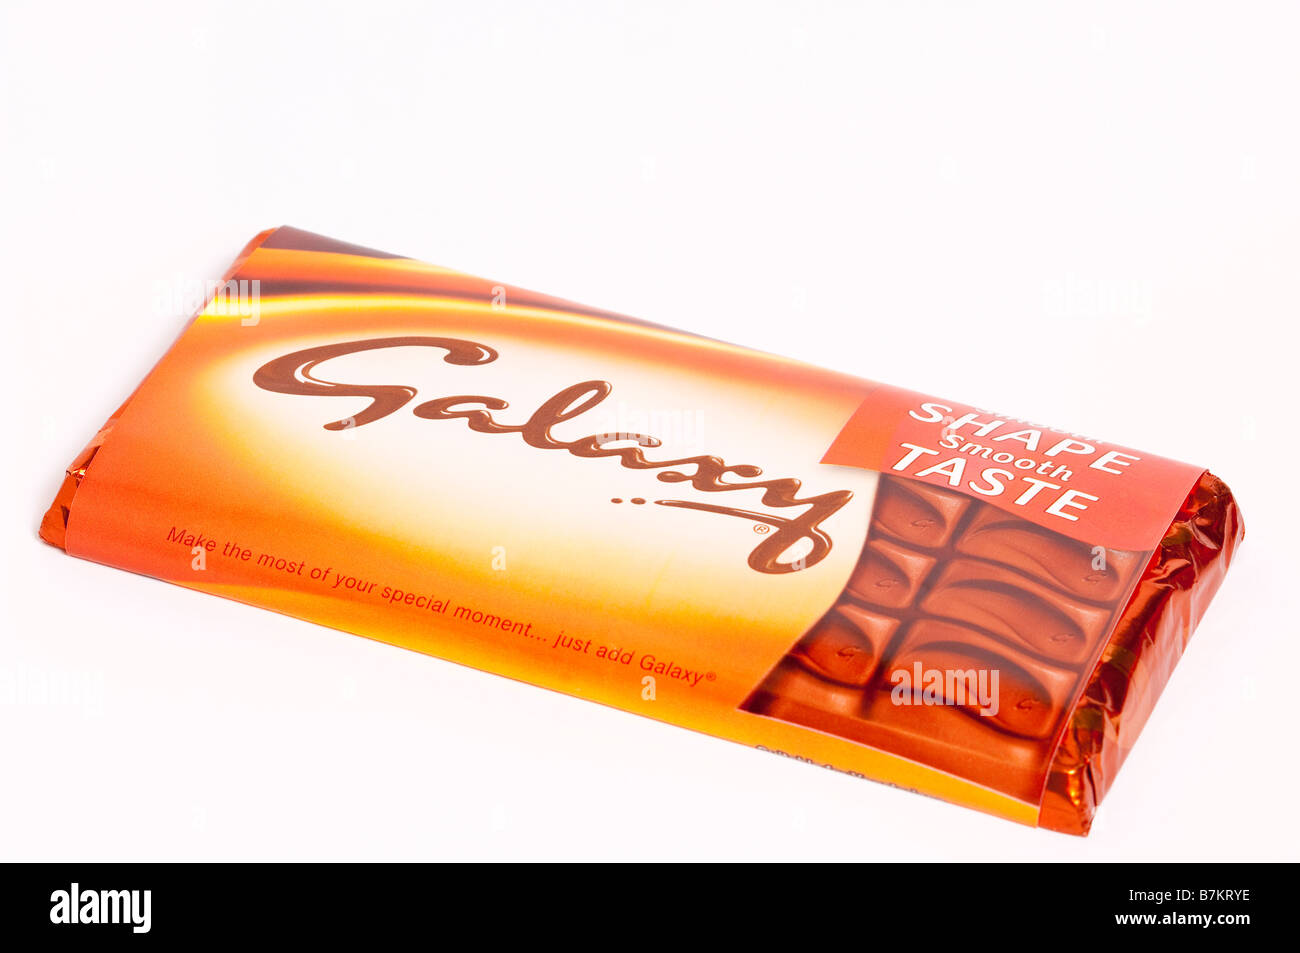 A Close Up Of A Bar Of Galaxy Milk Chocolate On A White